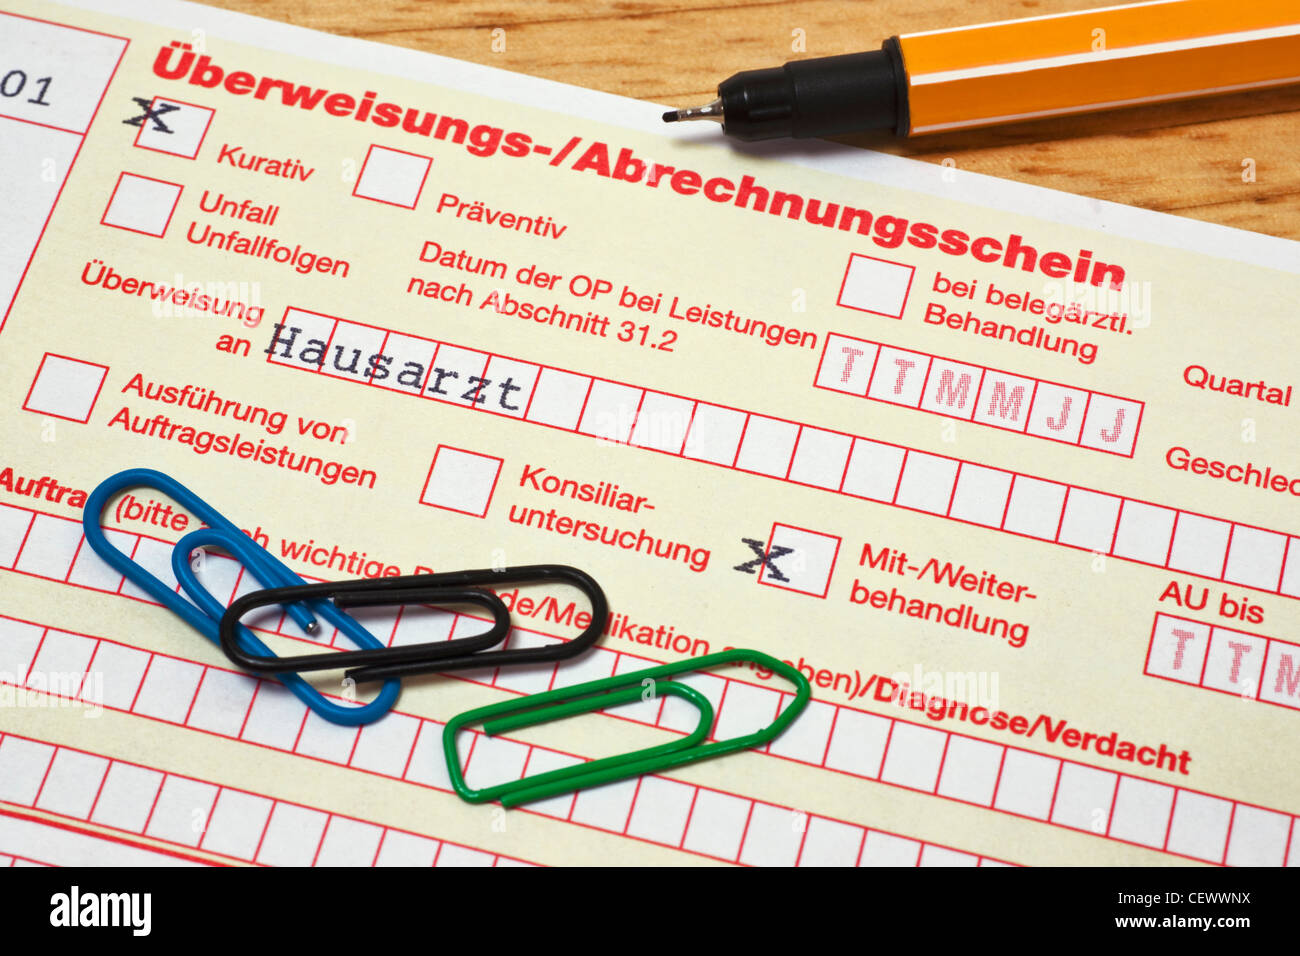 Detail photo of a German letter of referral to general practitioner, a pen and paper clips are alongside - Stock Image